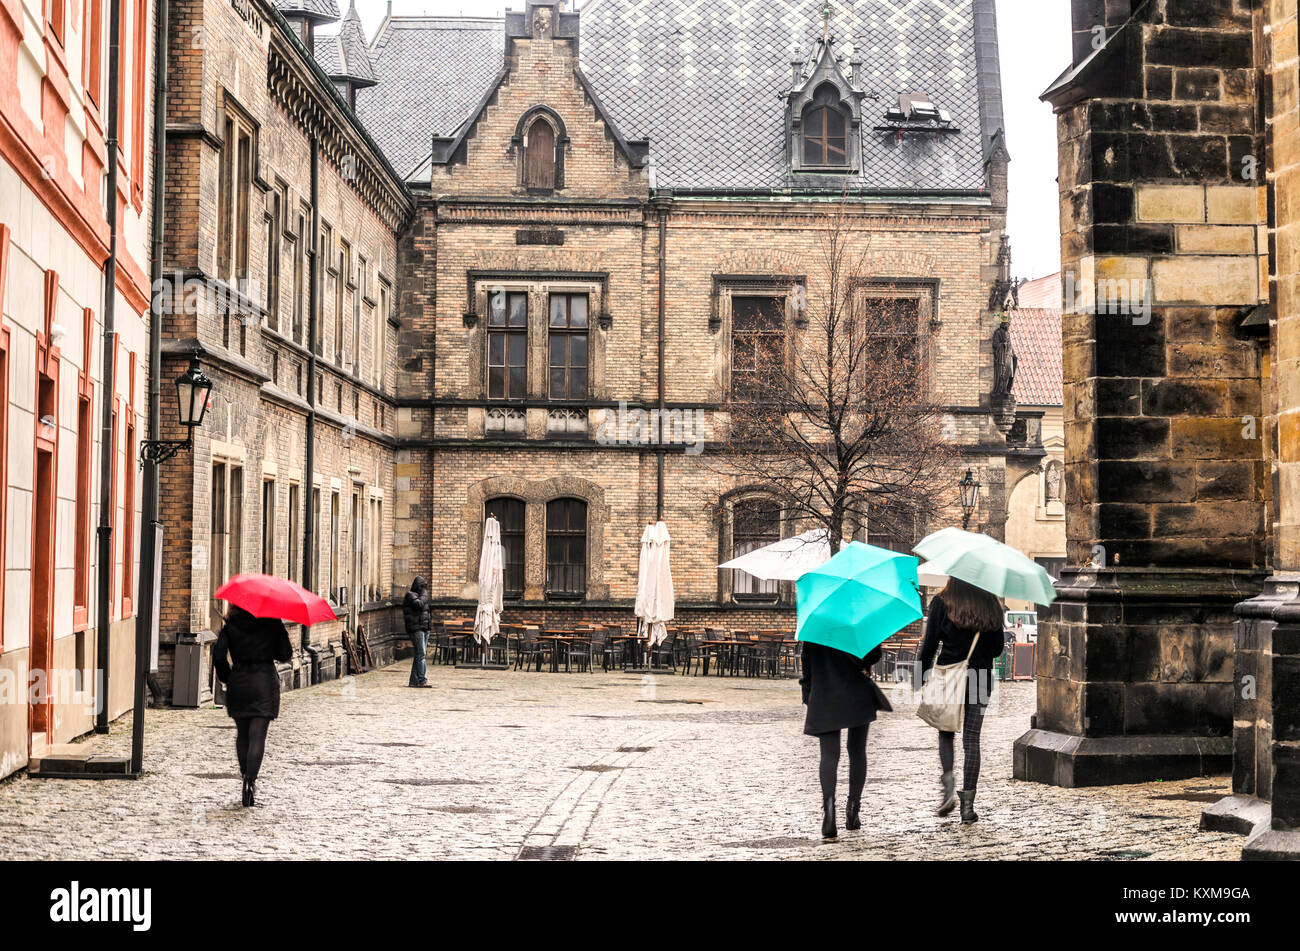 rainy day in the historic center of prague strollers with umbrellas cobbled streets and historical buildings czech - Stock Image